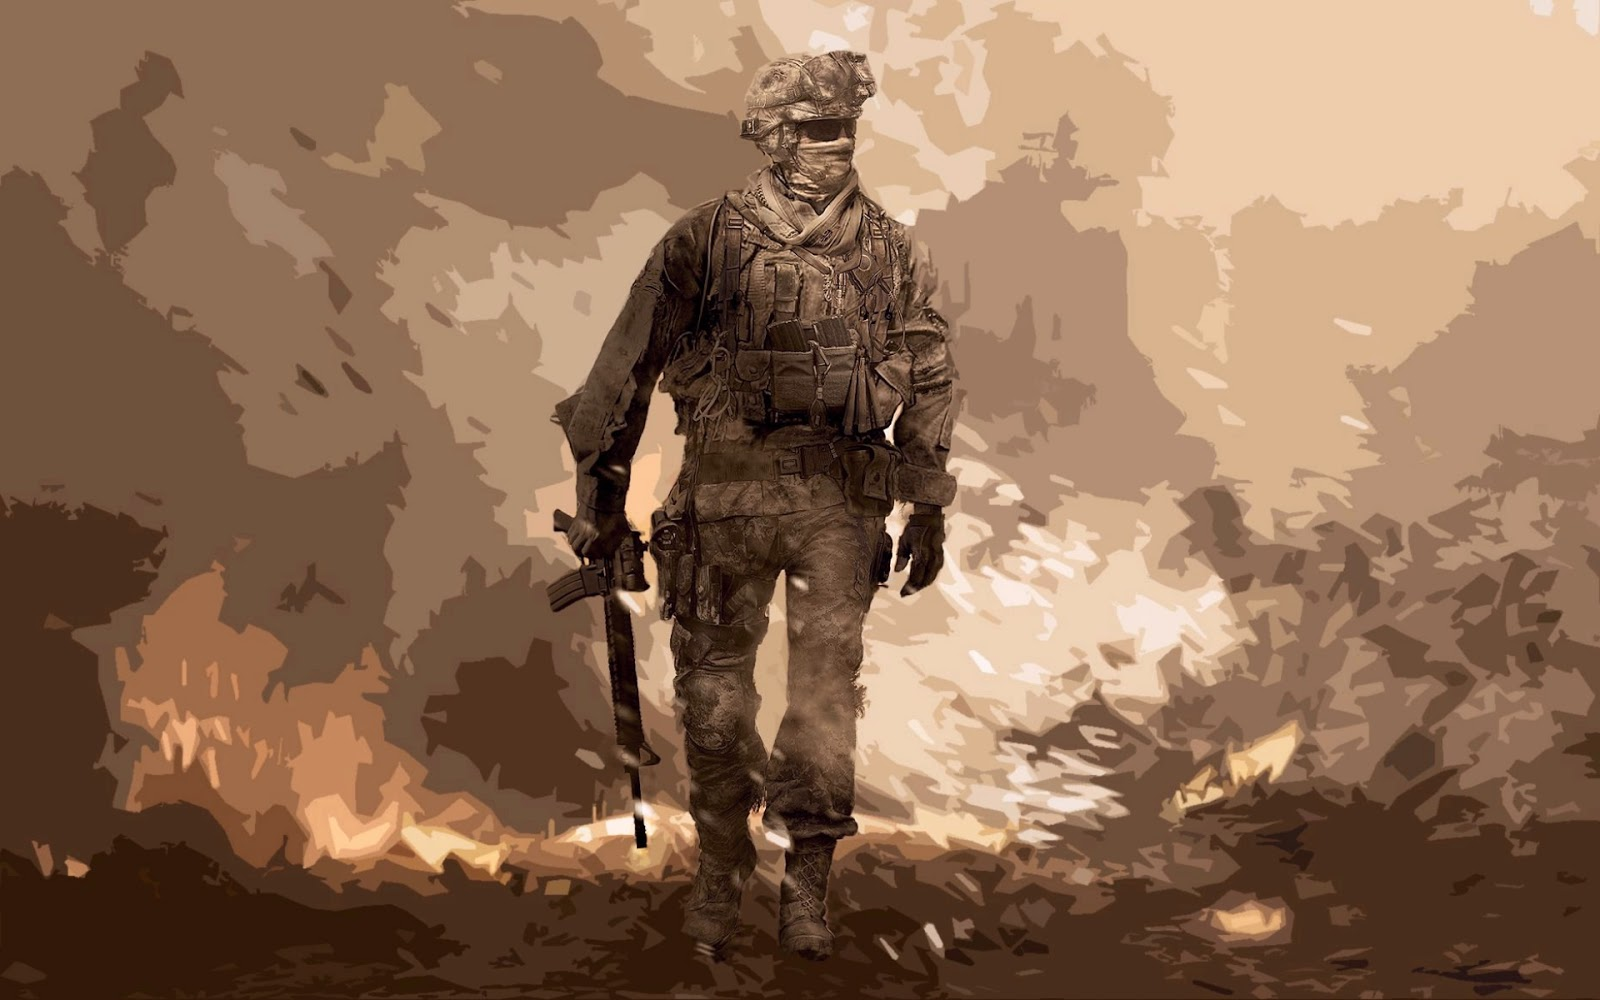 military Soldier wallpaper high resolution 1920x1200 1600x1000